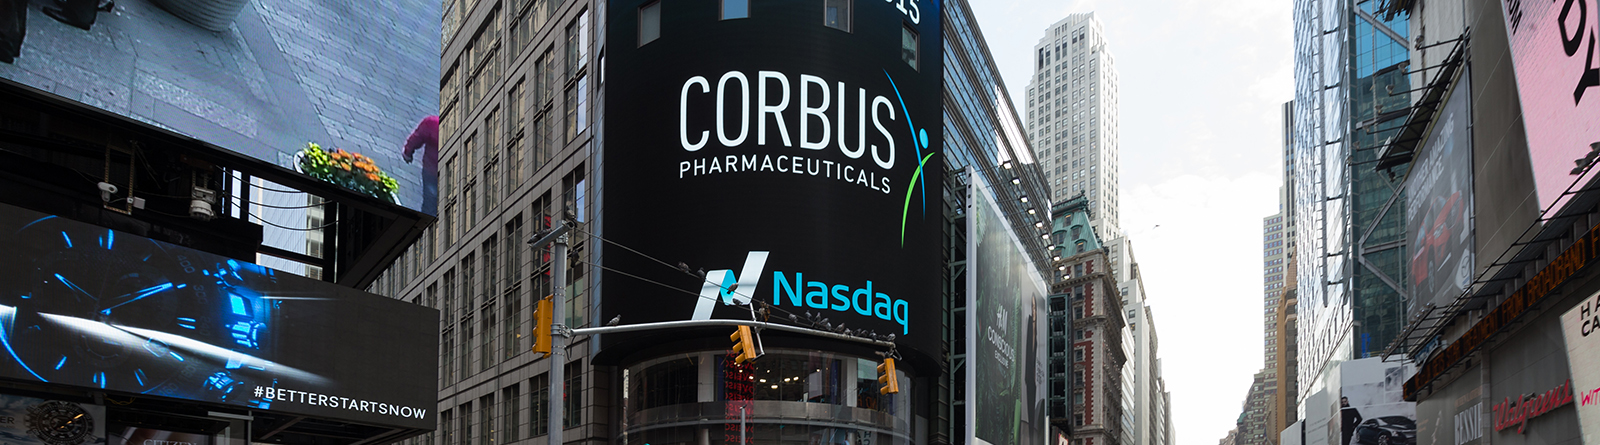 Corbus Pharmaceuticals Reports Last Subject Visit in Phase 2b Study of Lenabasum for Treatment of Cystic Fibrosis Banner